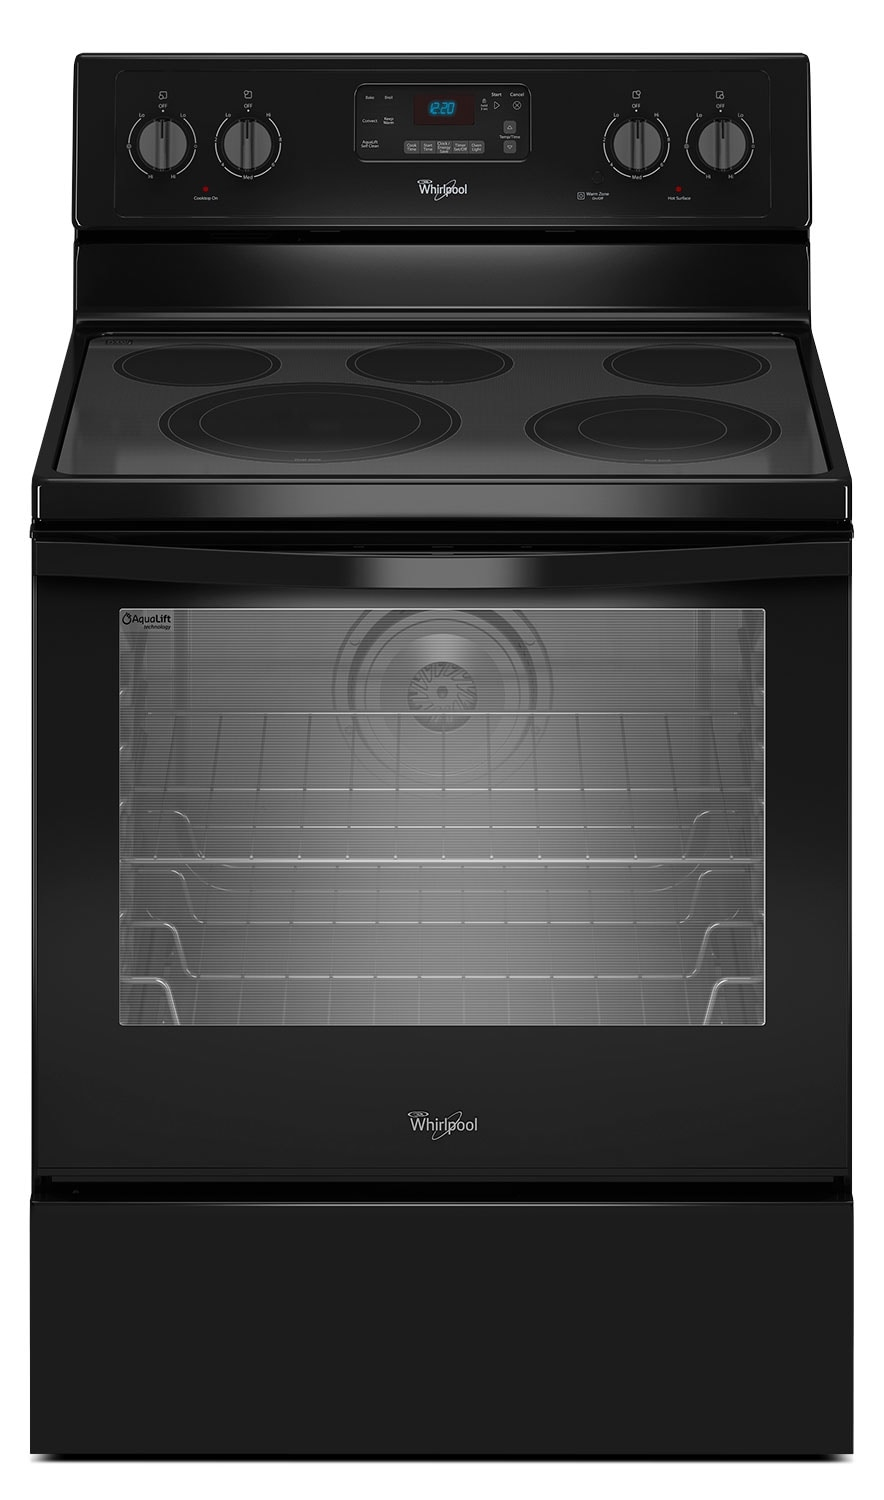 Cooking Products - Whirlpool 6.4 Cu. Ft. Electric Range with AquaLift® Technology - Black